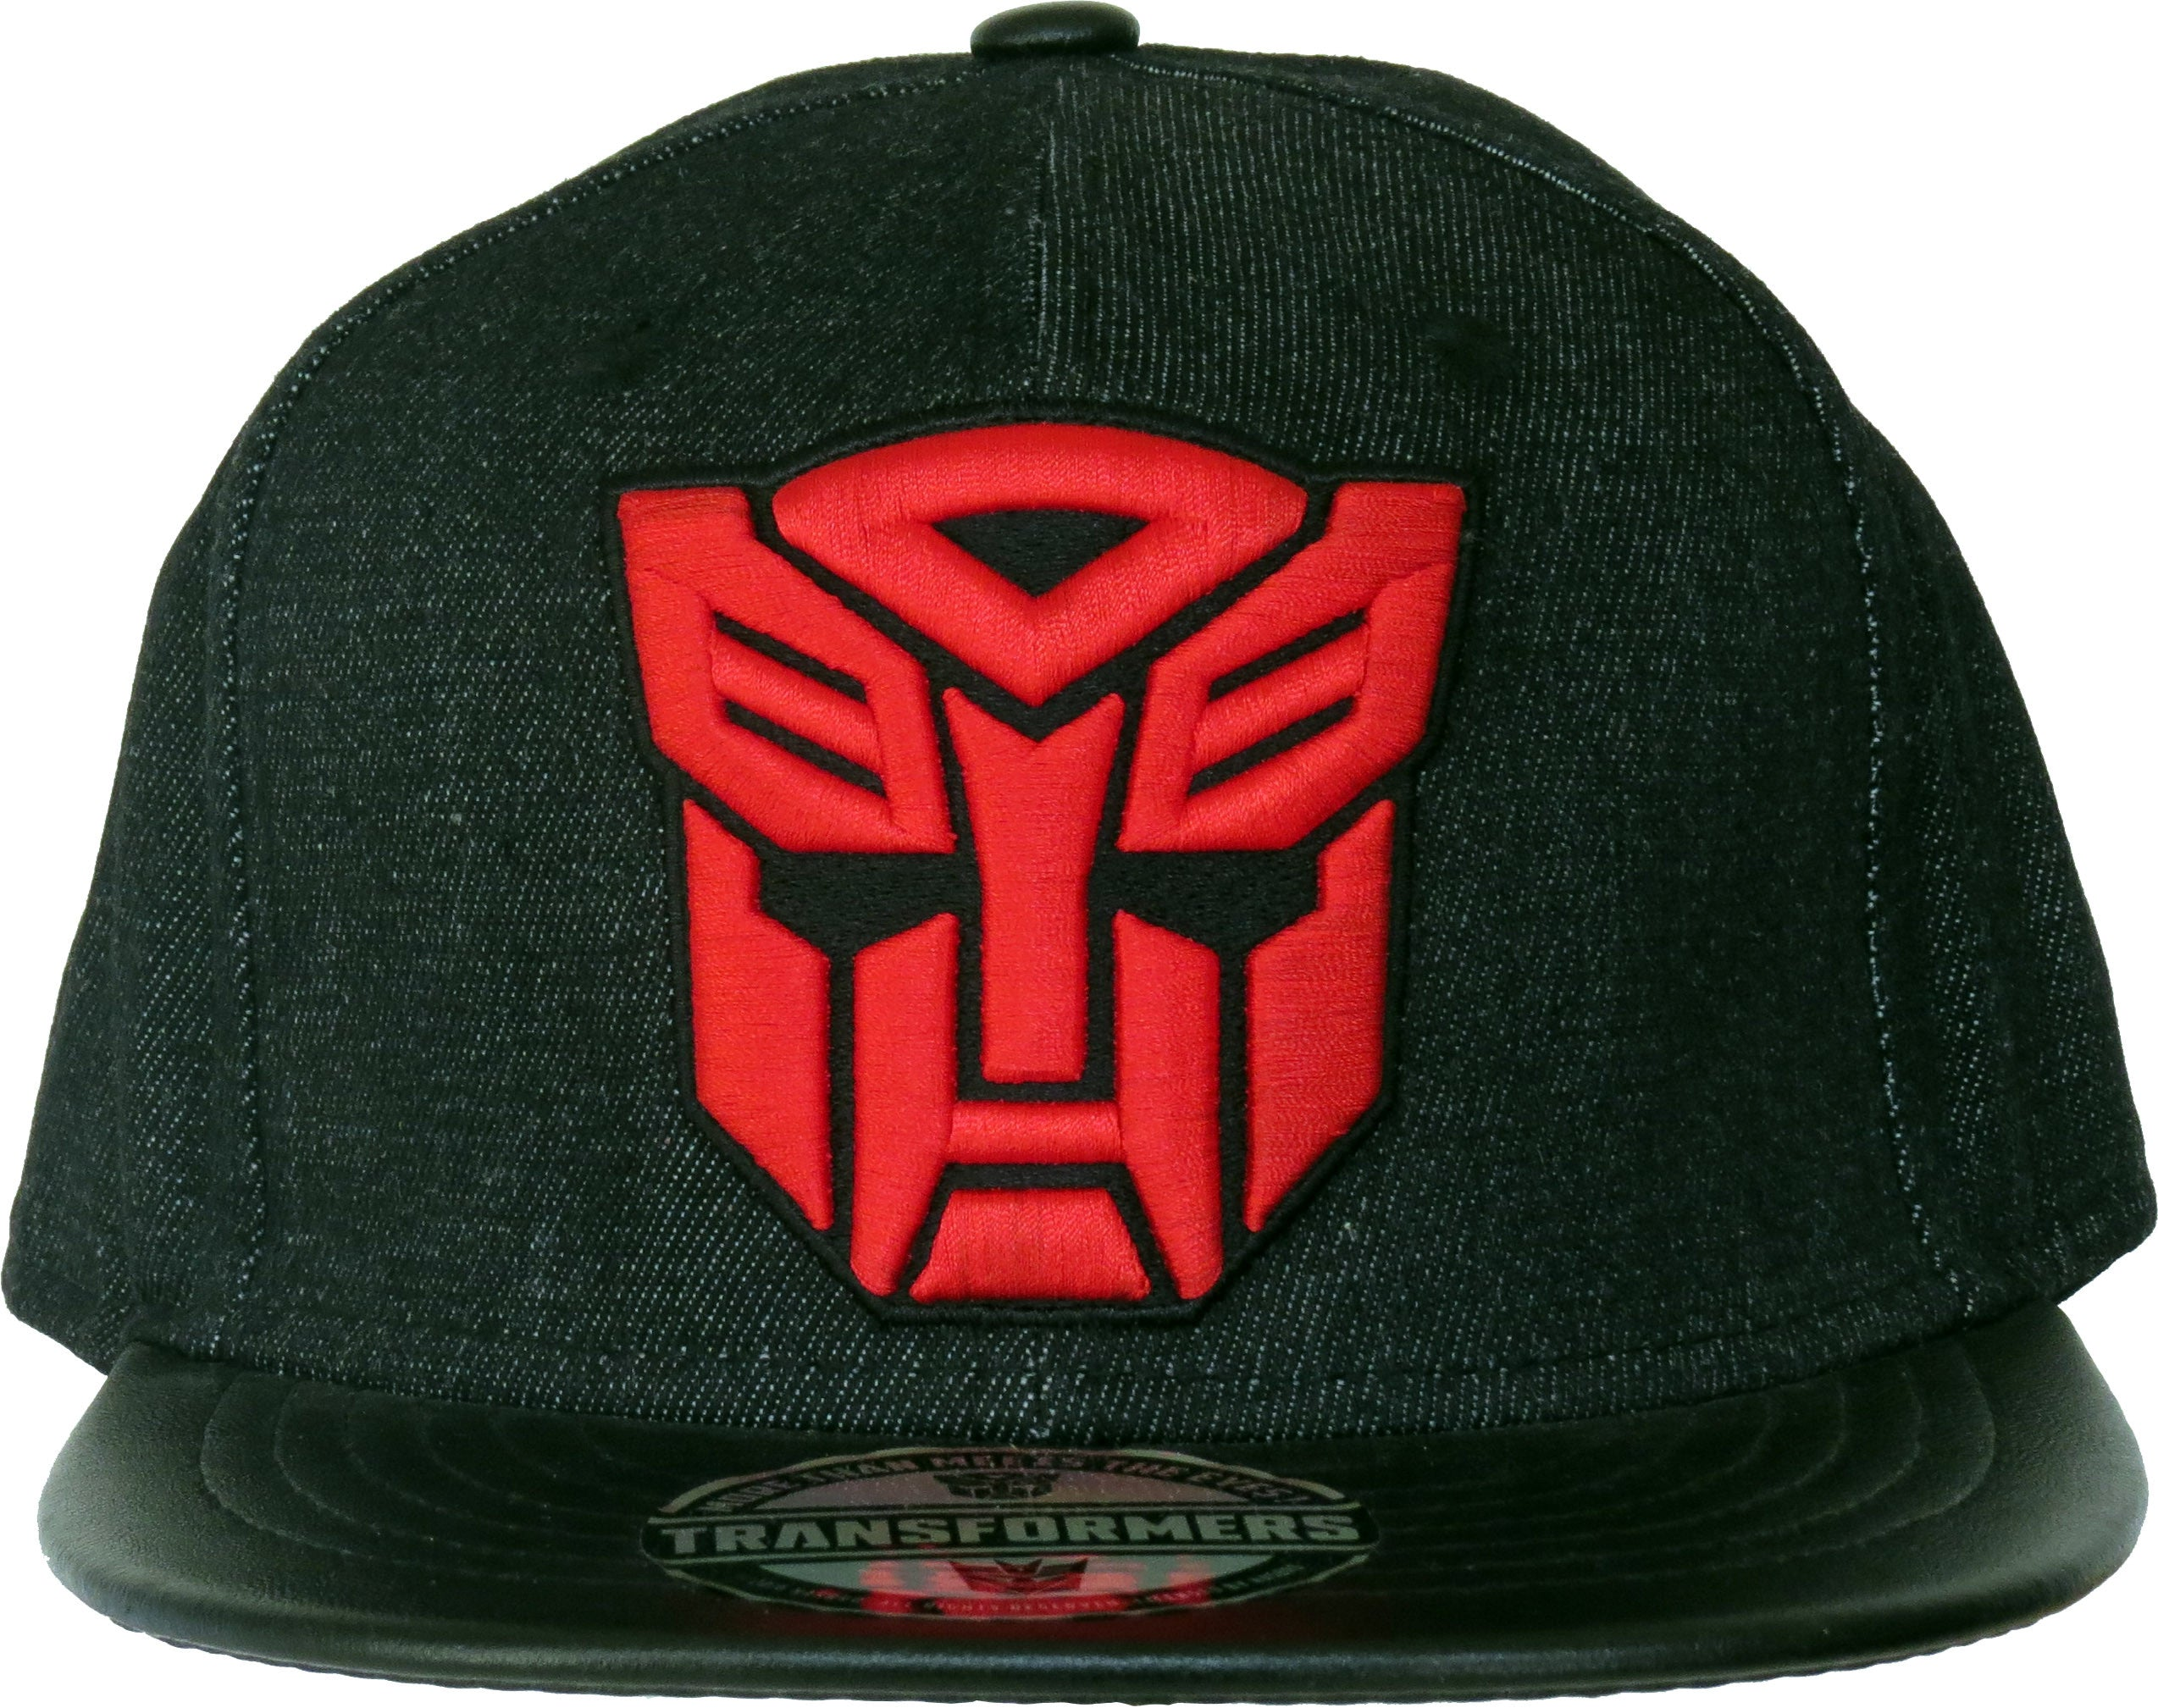 8b98ca87ff9a4 ... Transformers 3D Red Autobot Logo Black Snapback Cap - pumpheadgear